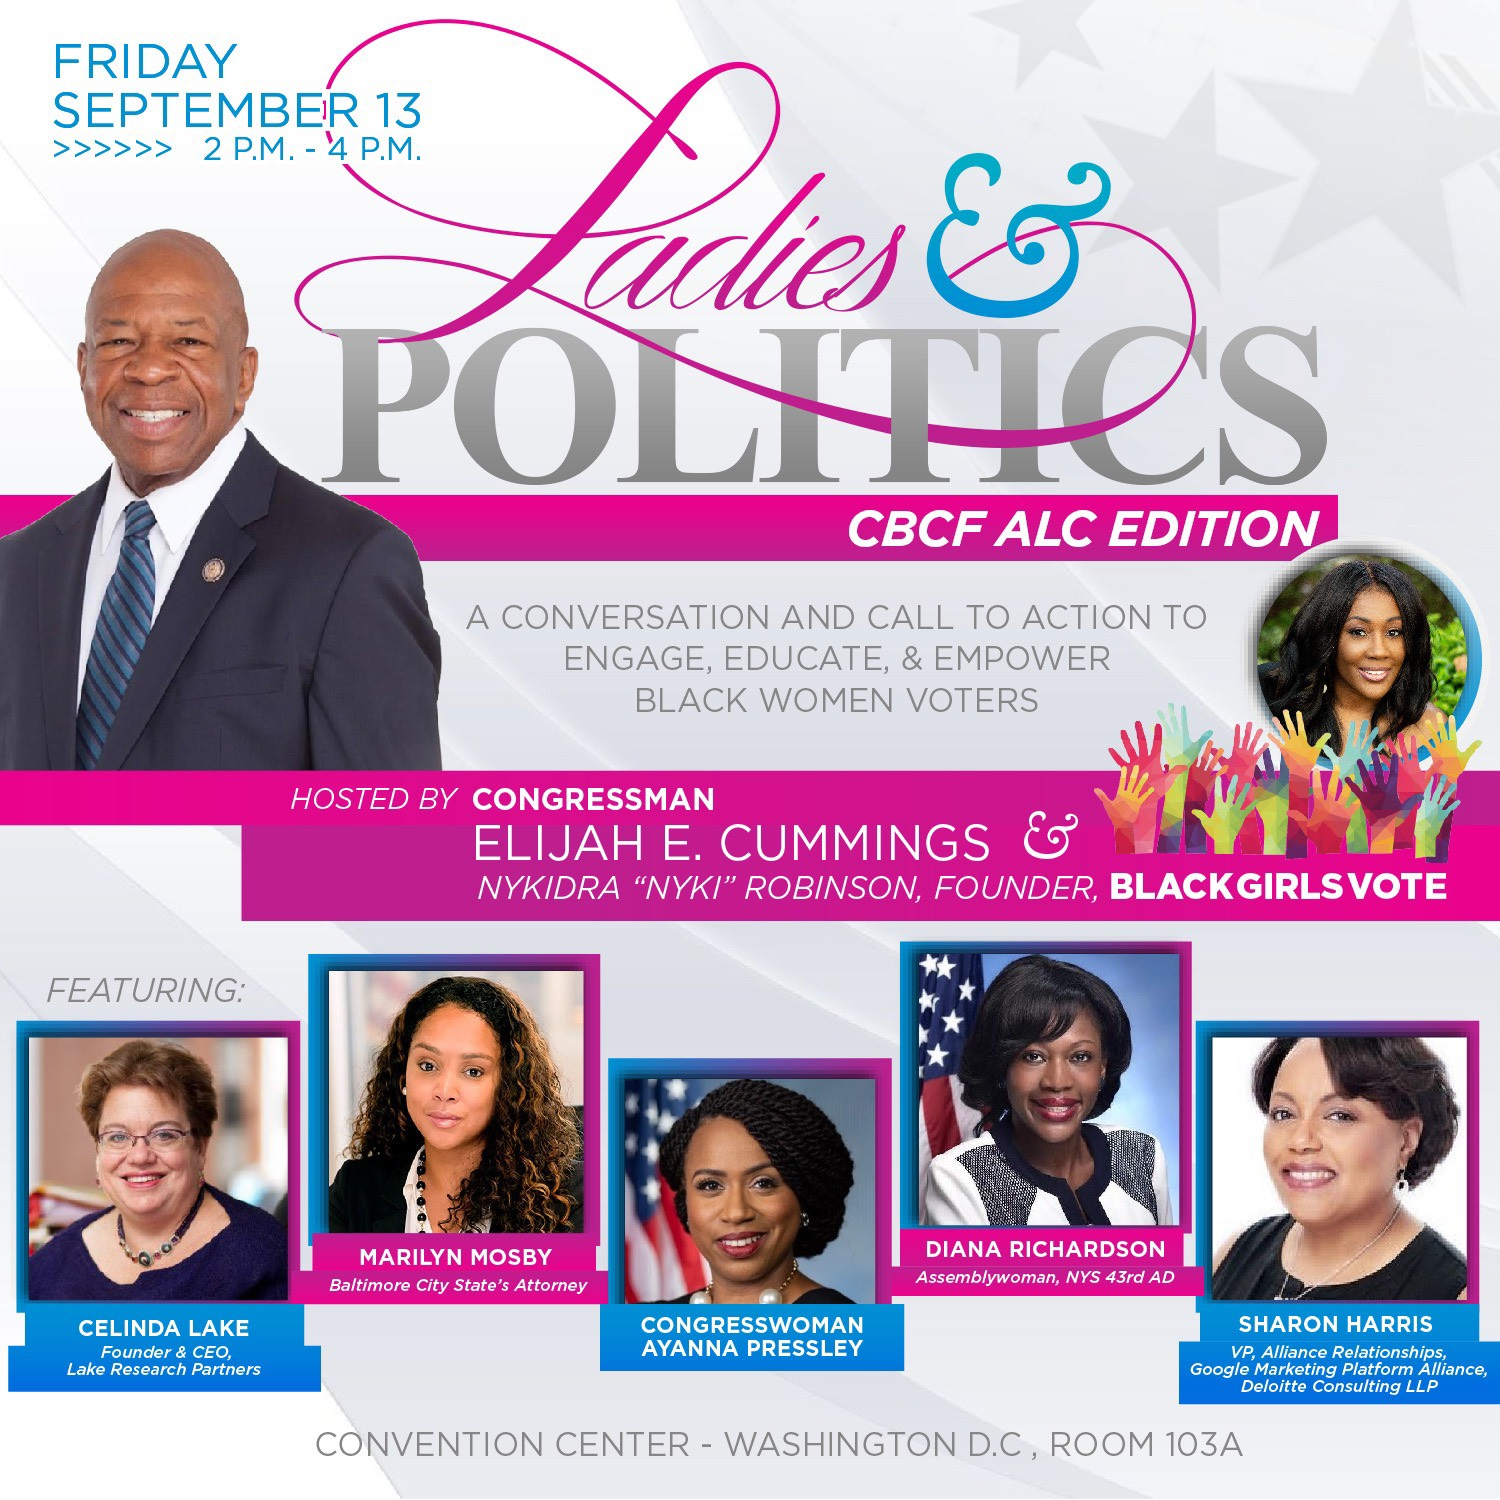 Ladies & Politics CBCF ALC Edition